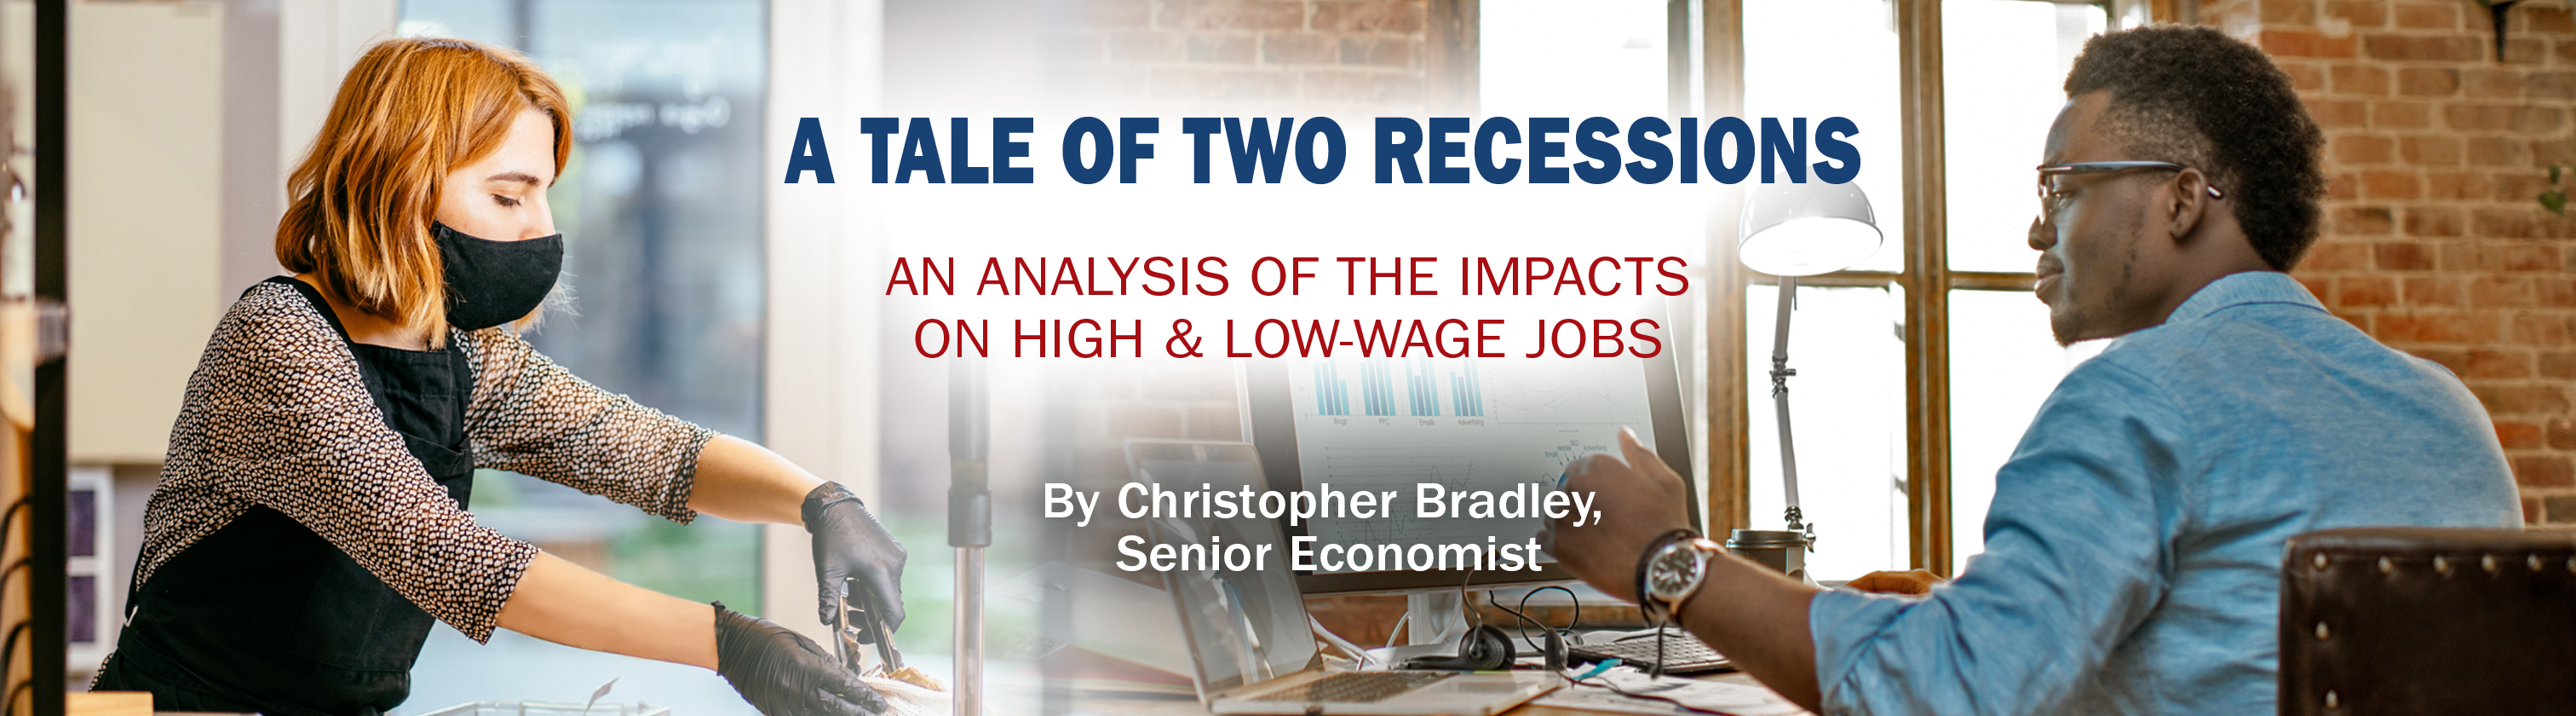 A Tale of Two Recessions